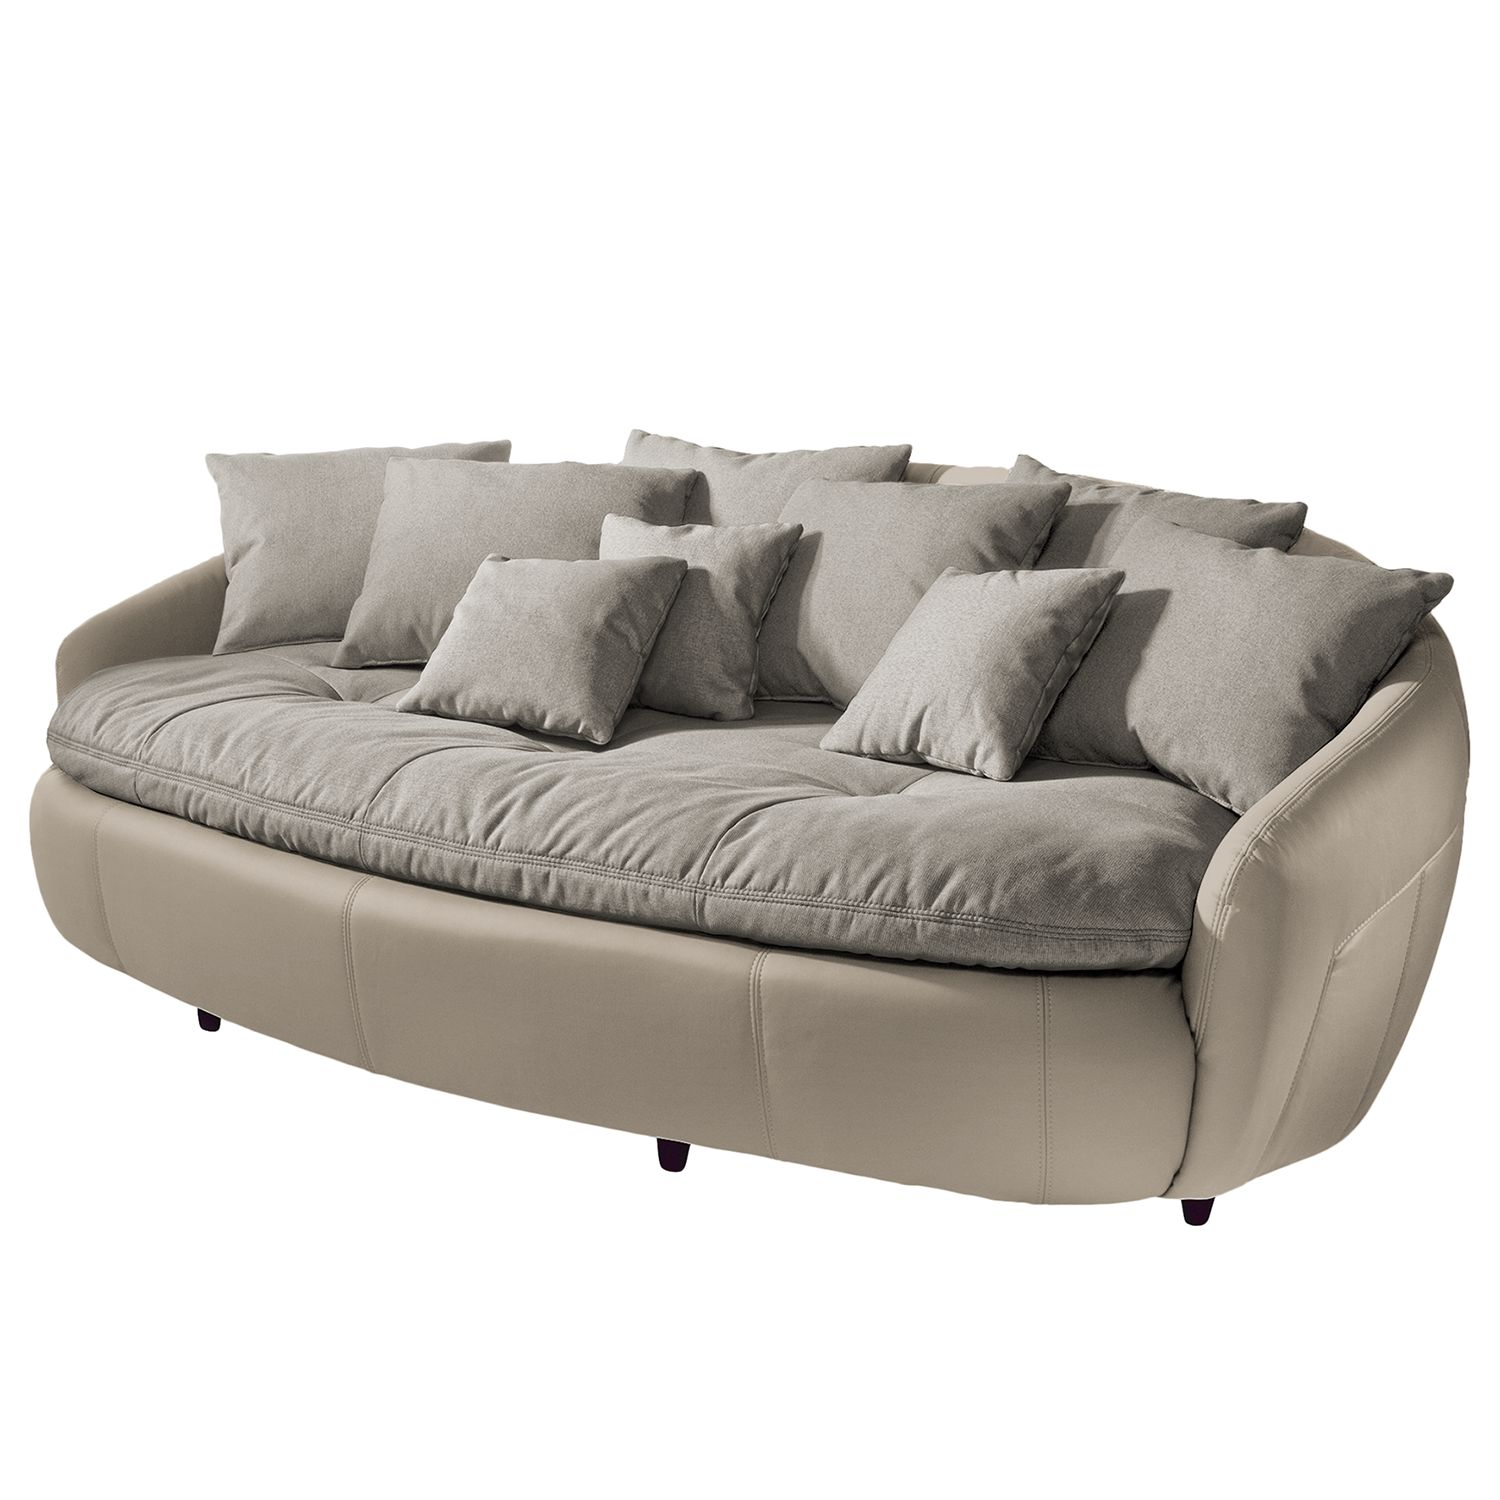 Big Sofa Kunstleder Big Sofa Kunstleder Elegant Big Sofa Kunstleder Couch Of